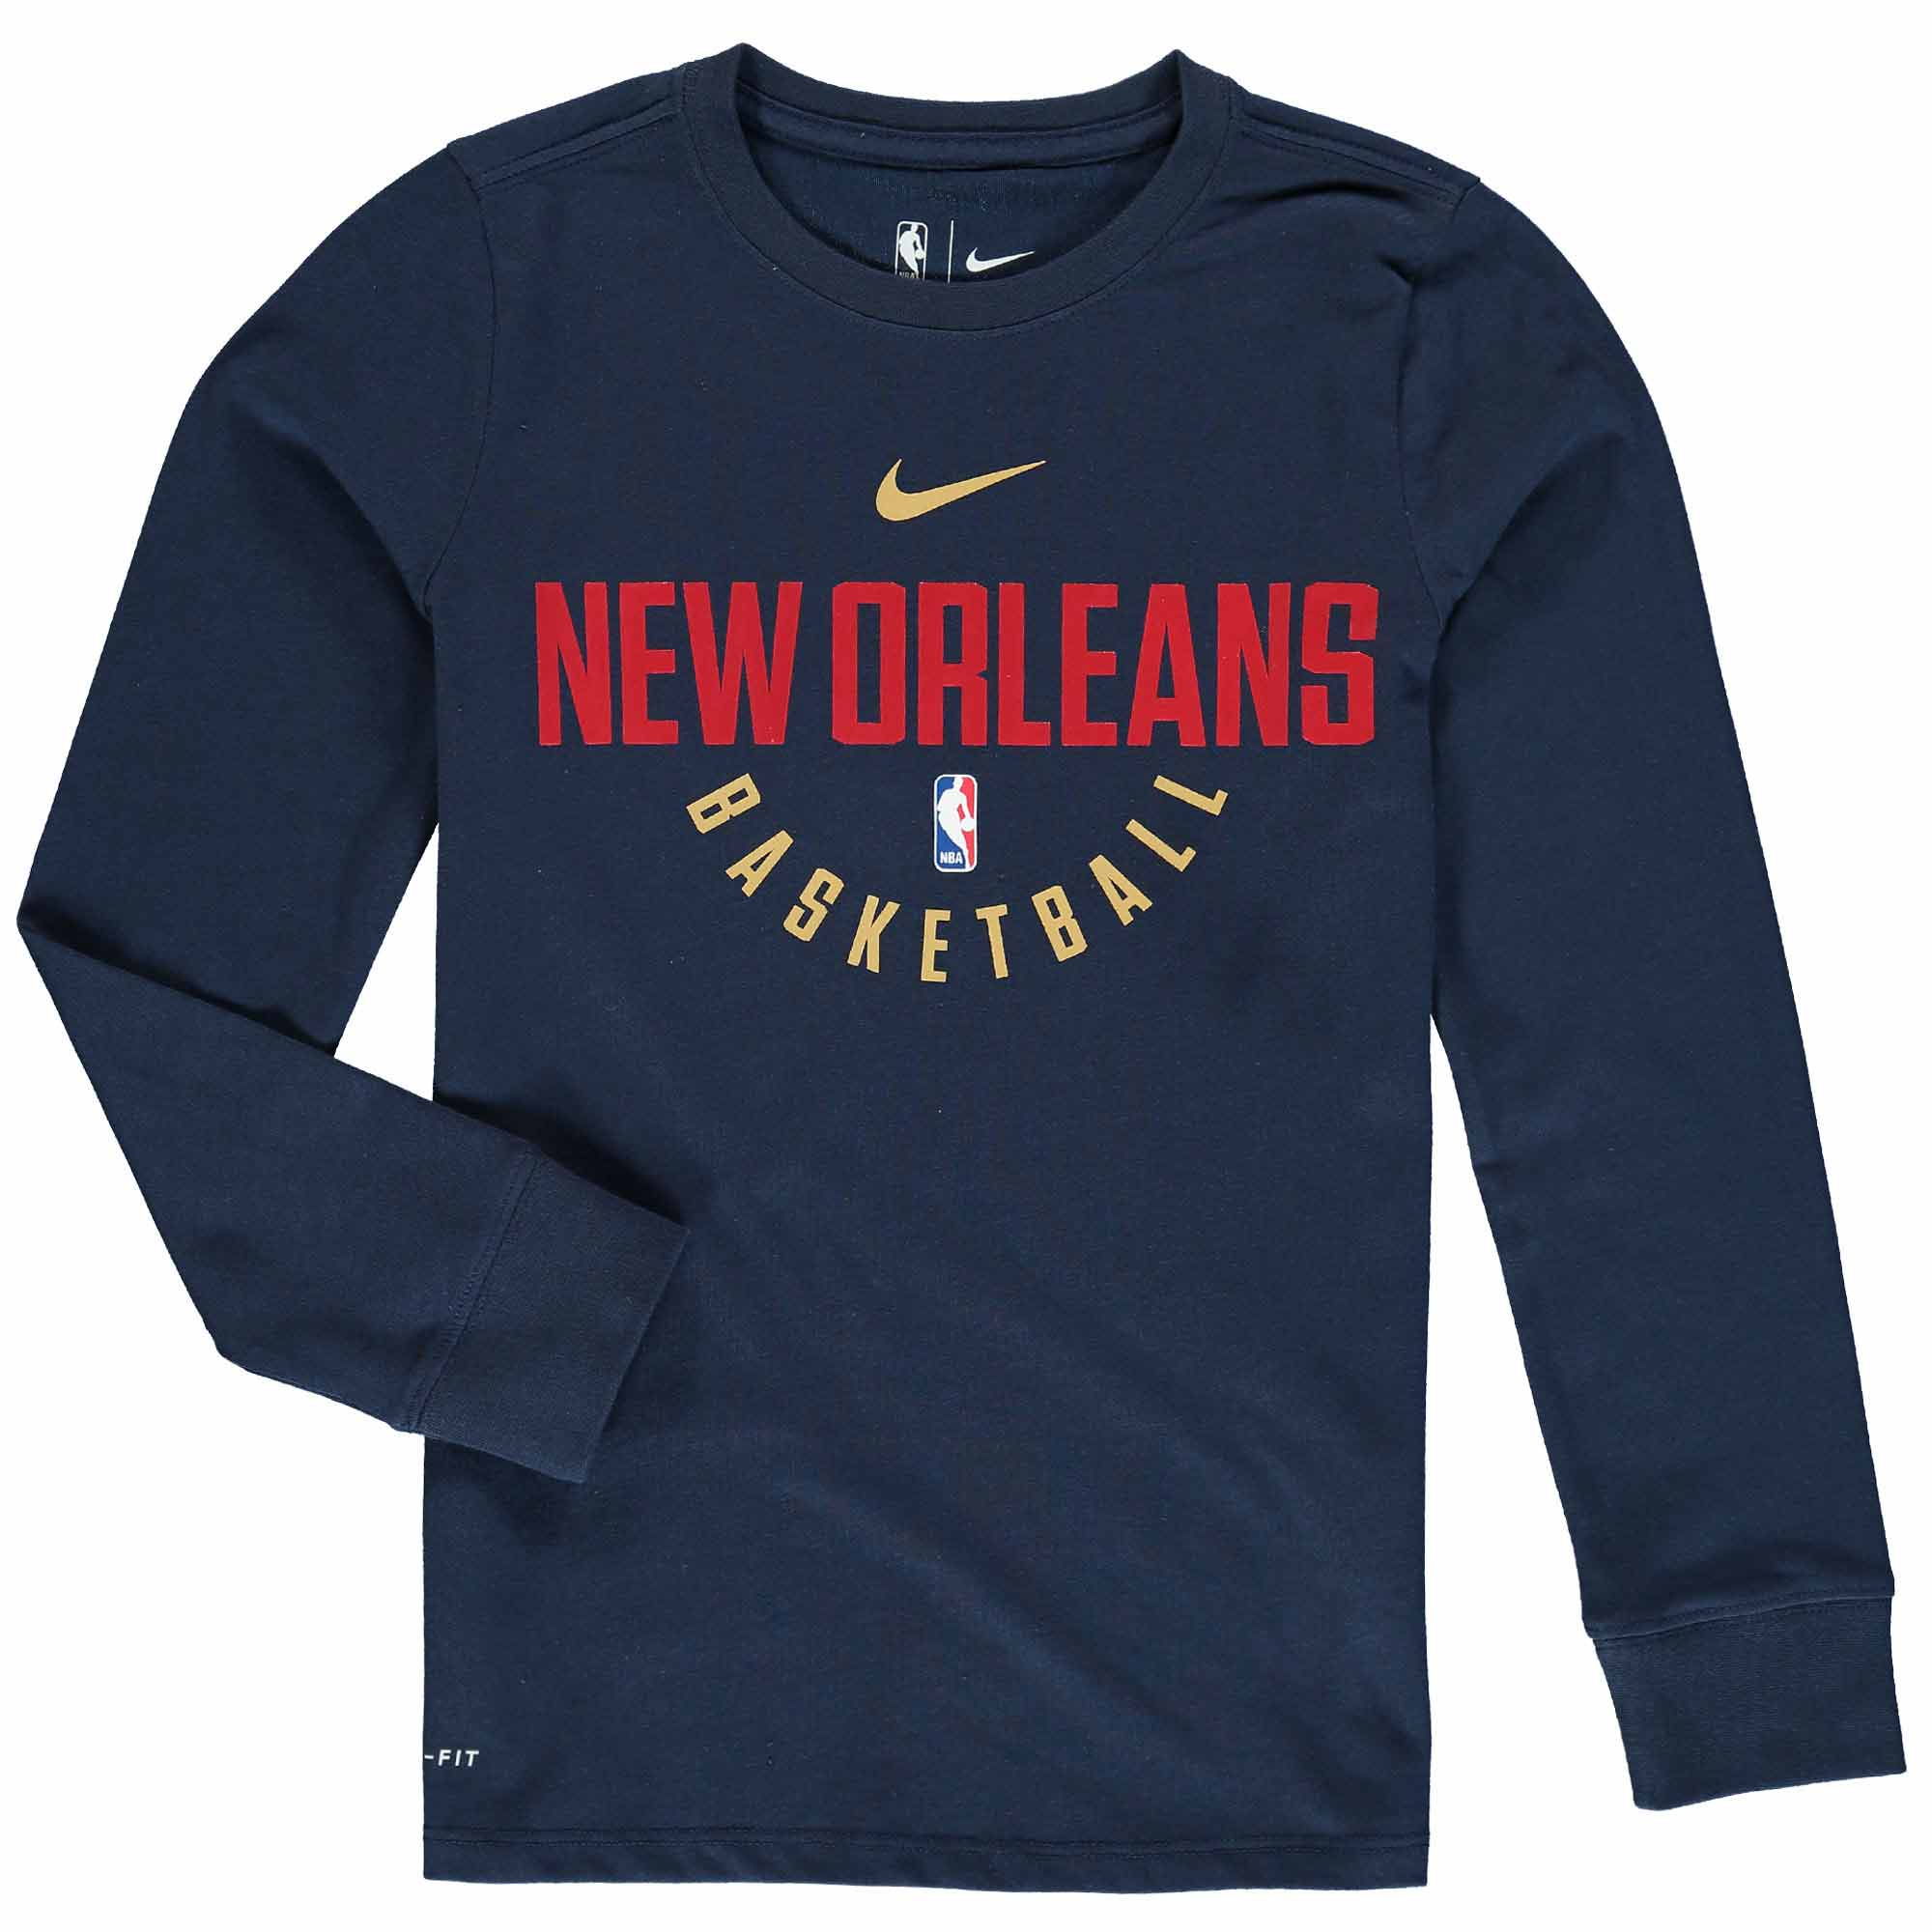 New Orleans Pelicans Nike Youth Elite Performance Practice Long Sleeve T-Shirt - Navy